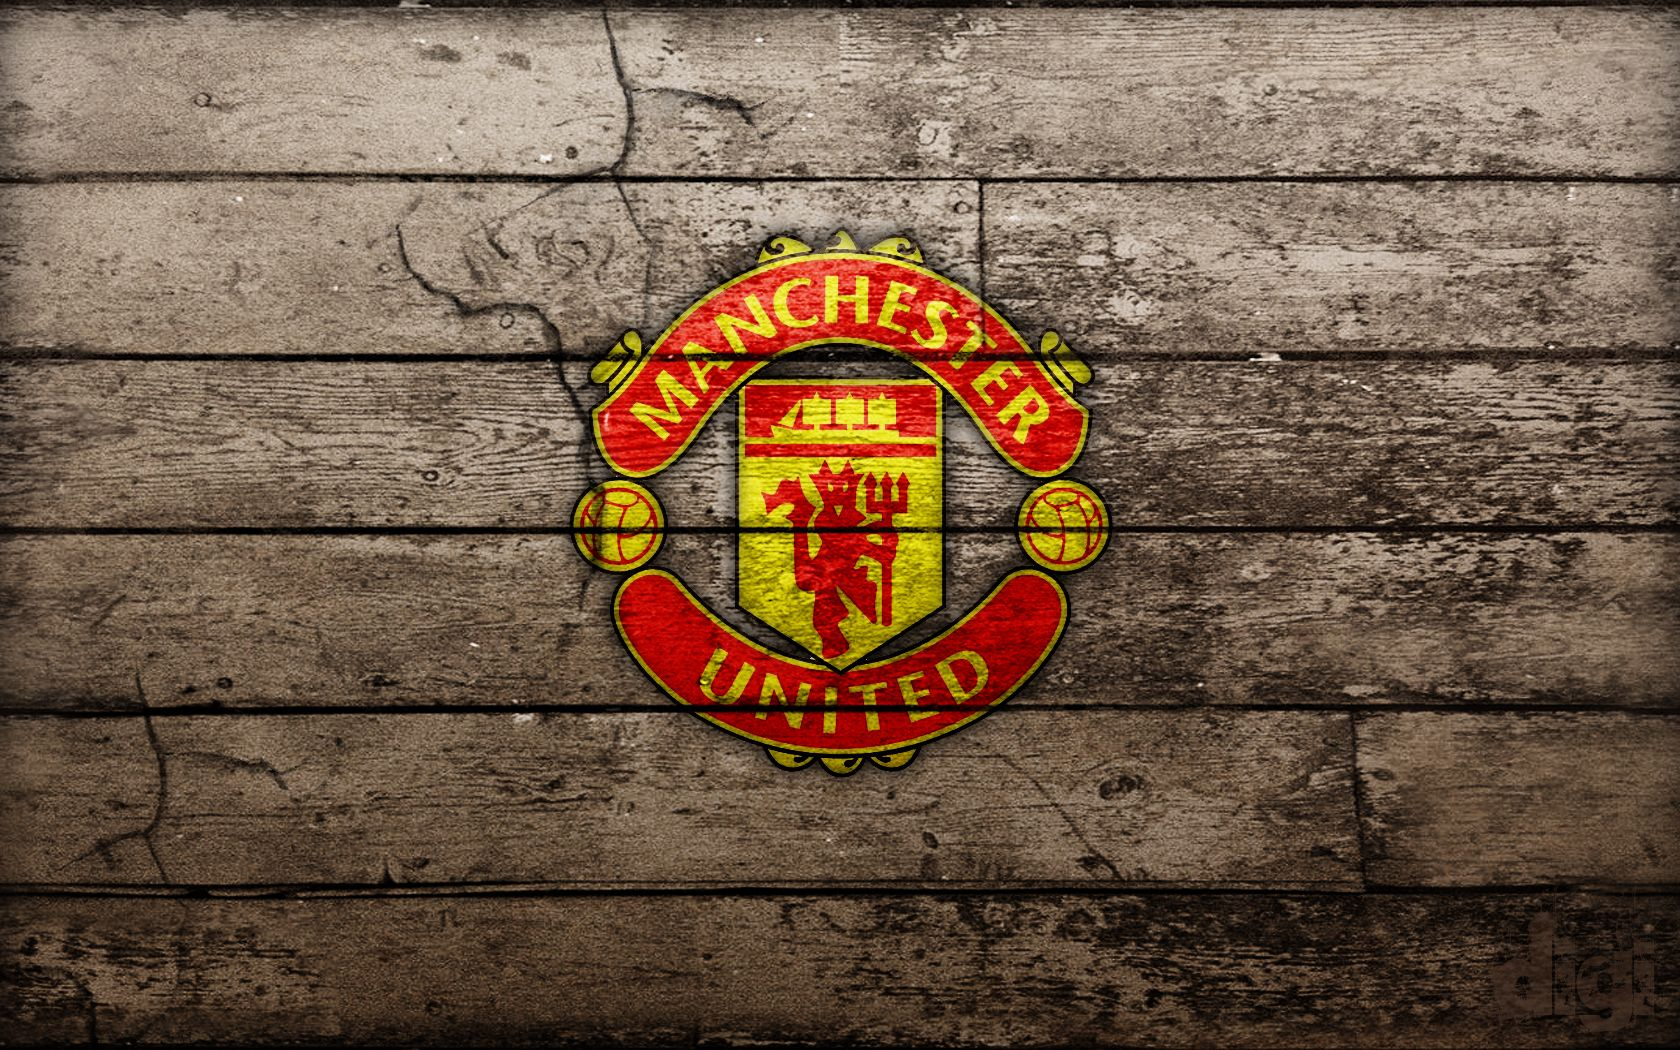 Manchester united iphone wallpaper tumblr - Man United